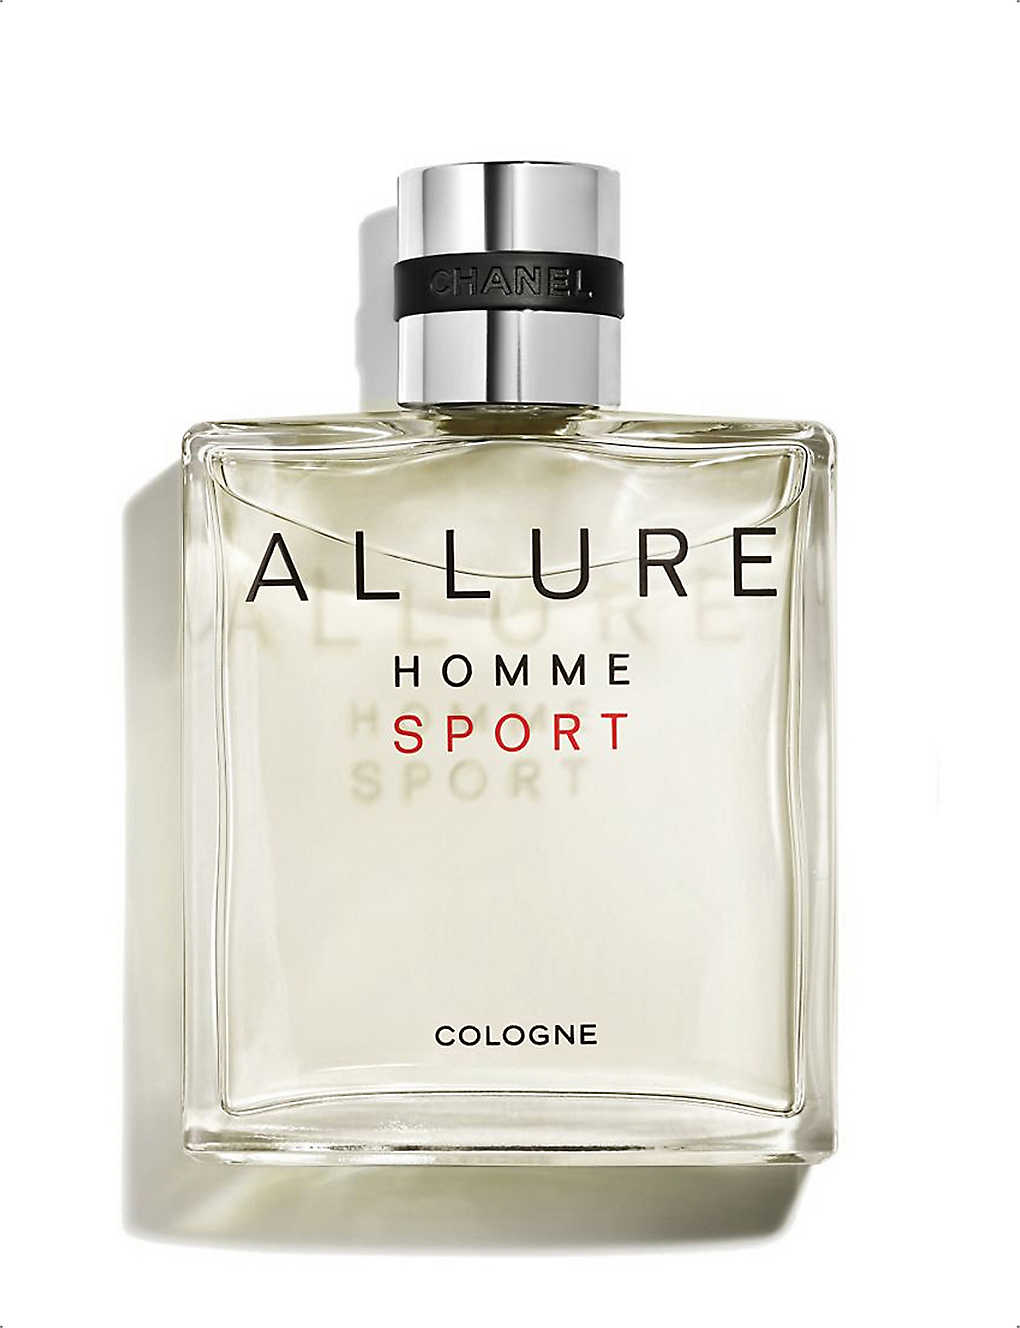 CHANEL - ALLURE HOMME SPORT Cologne Sport Spray 150ml  4a209c37a0c